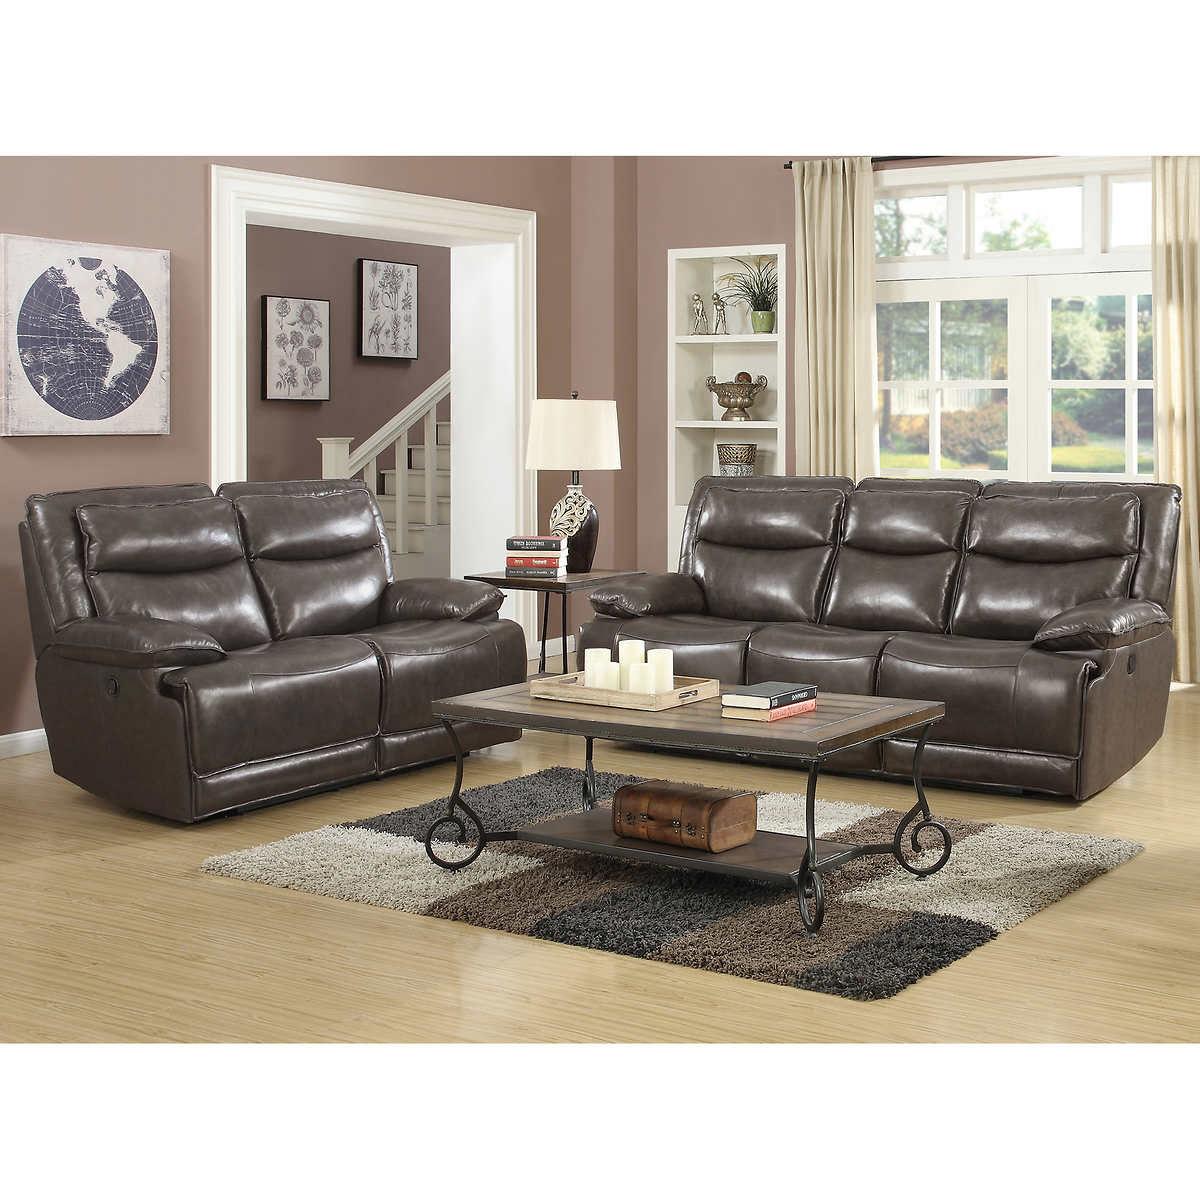 Brody 2 Piece Top Grain Leather Reclining Set Living Room Furniture Sets Costco